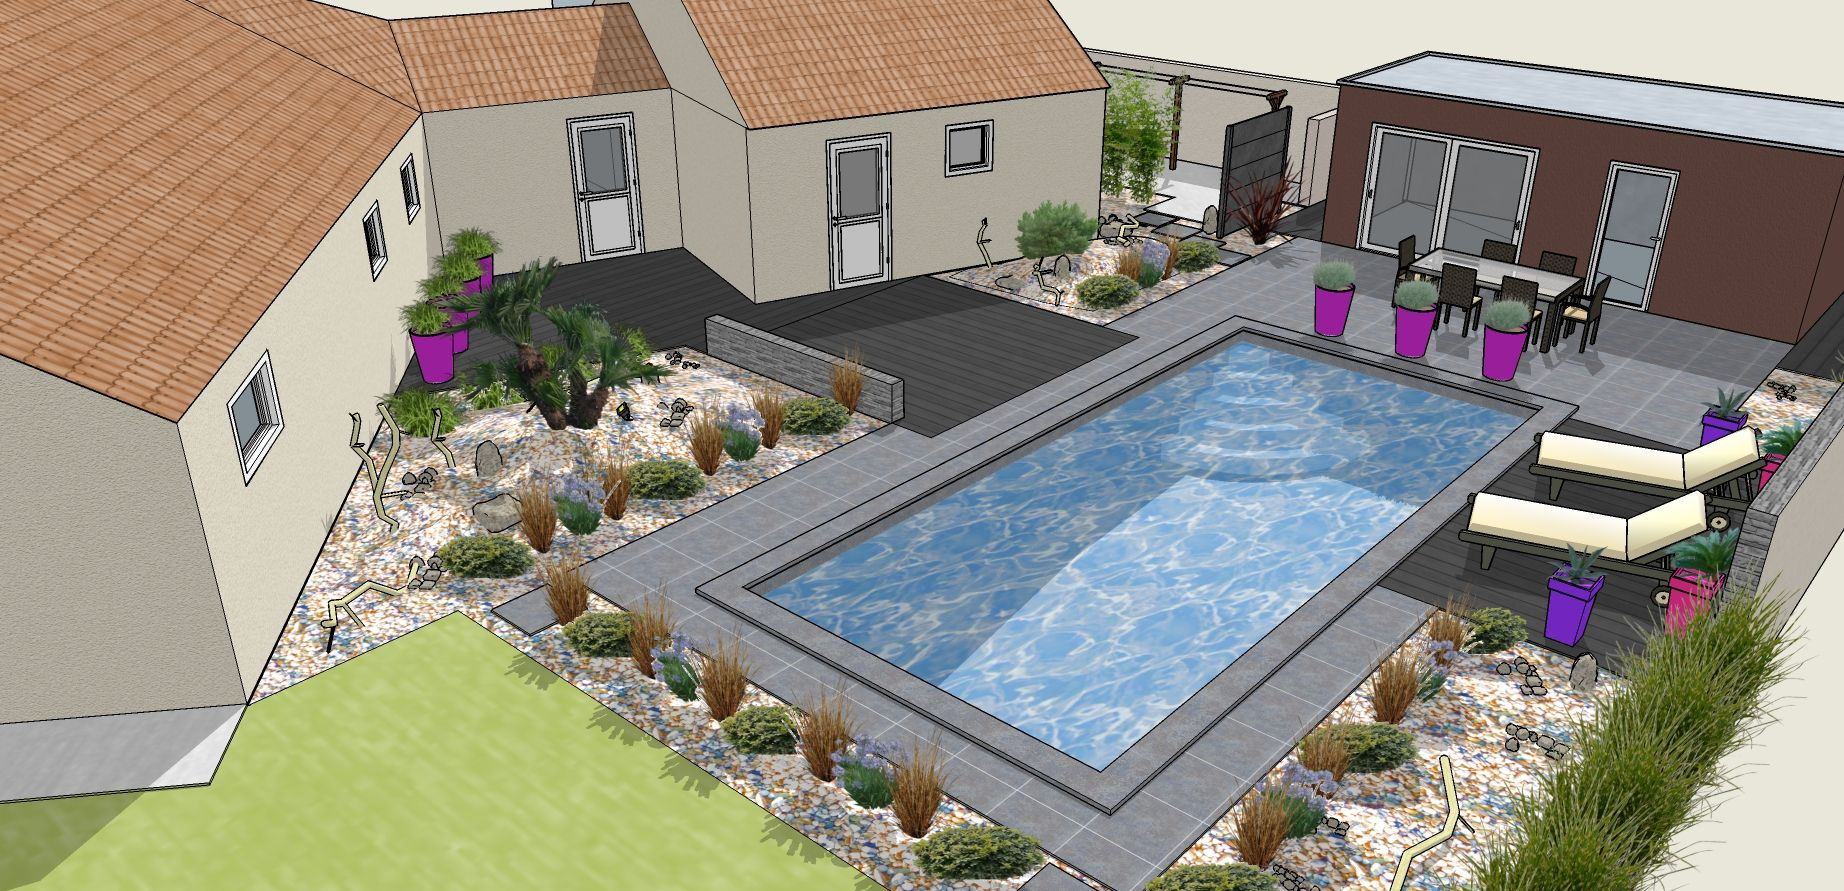 Am nagement paysager piscine creus e contemporain for Amenagement piscine